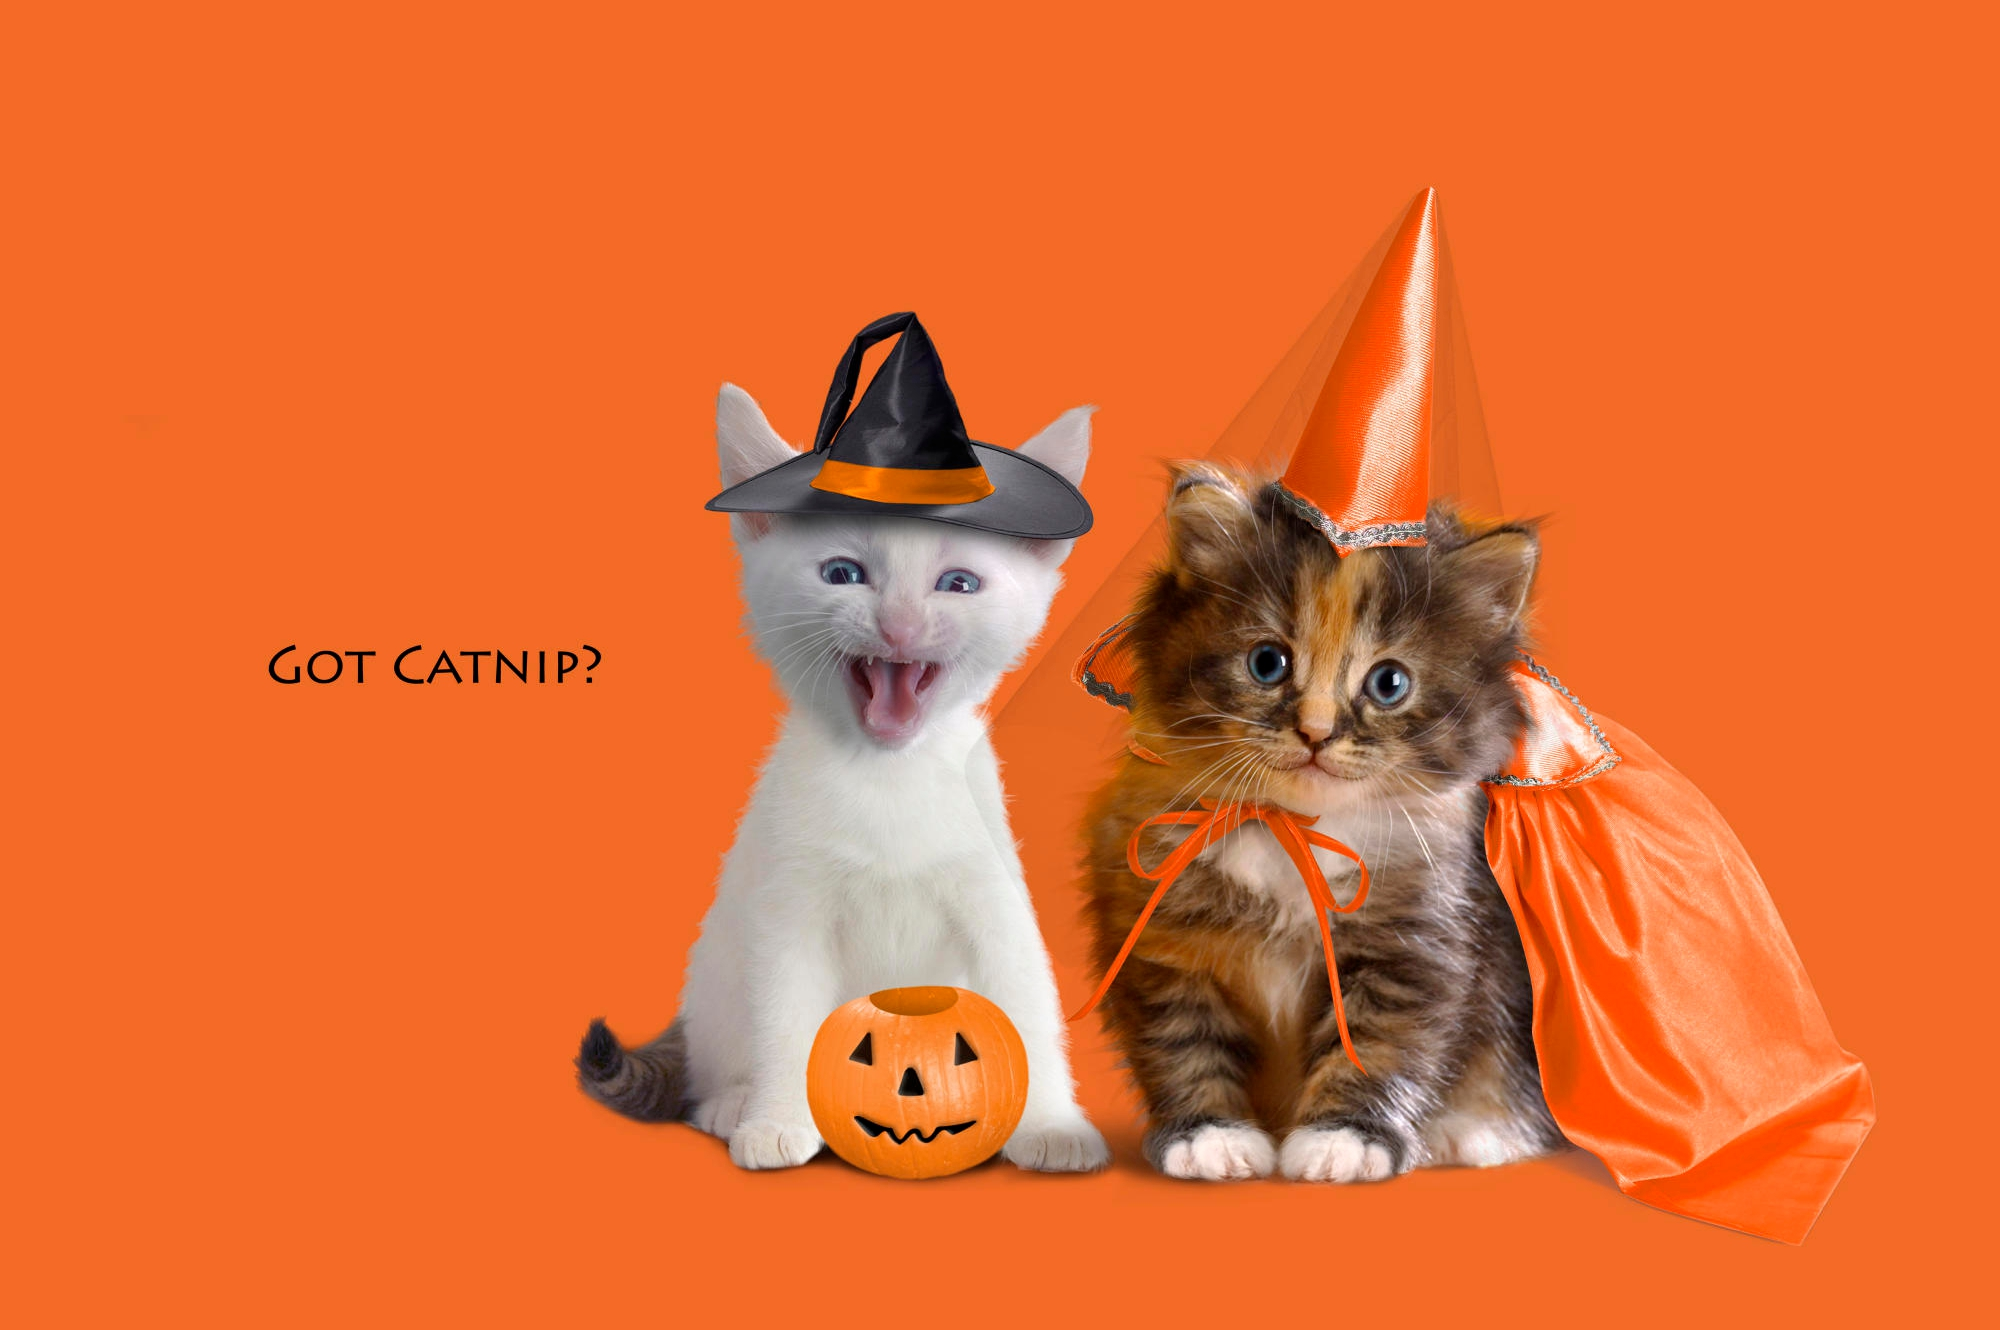 Kittens dressed up for Halloween funny picsco 2000x1330